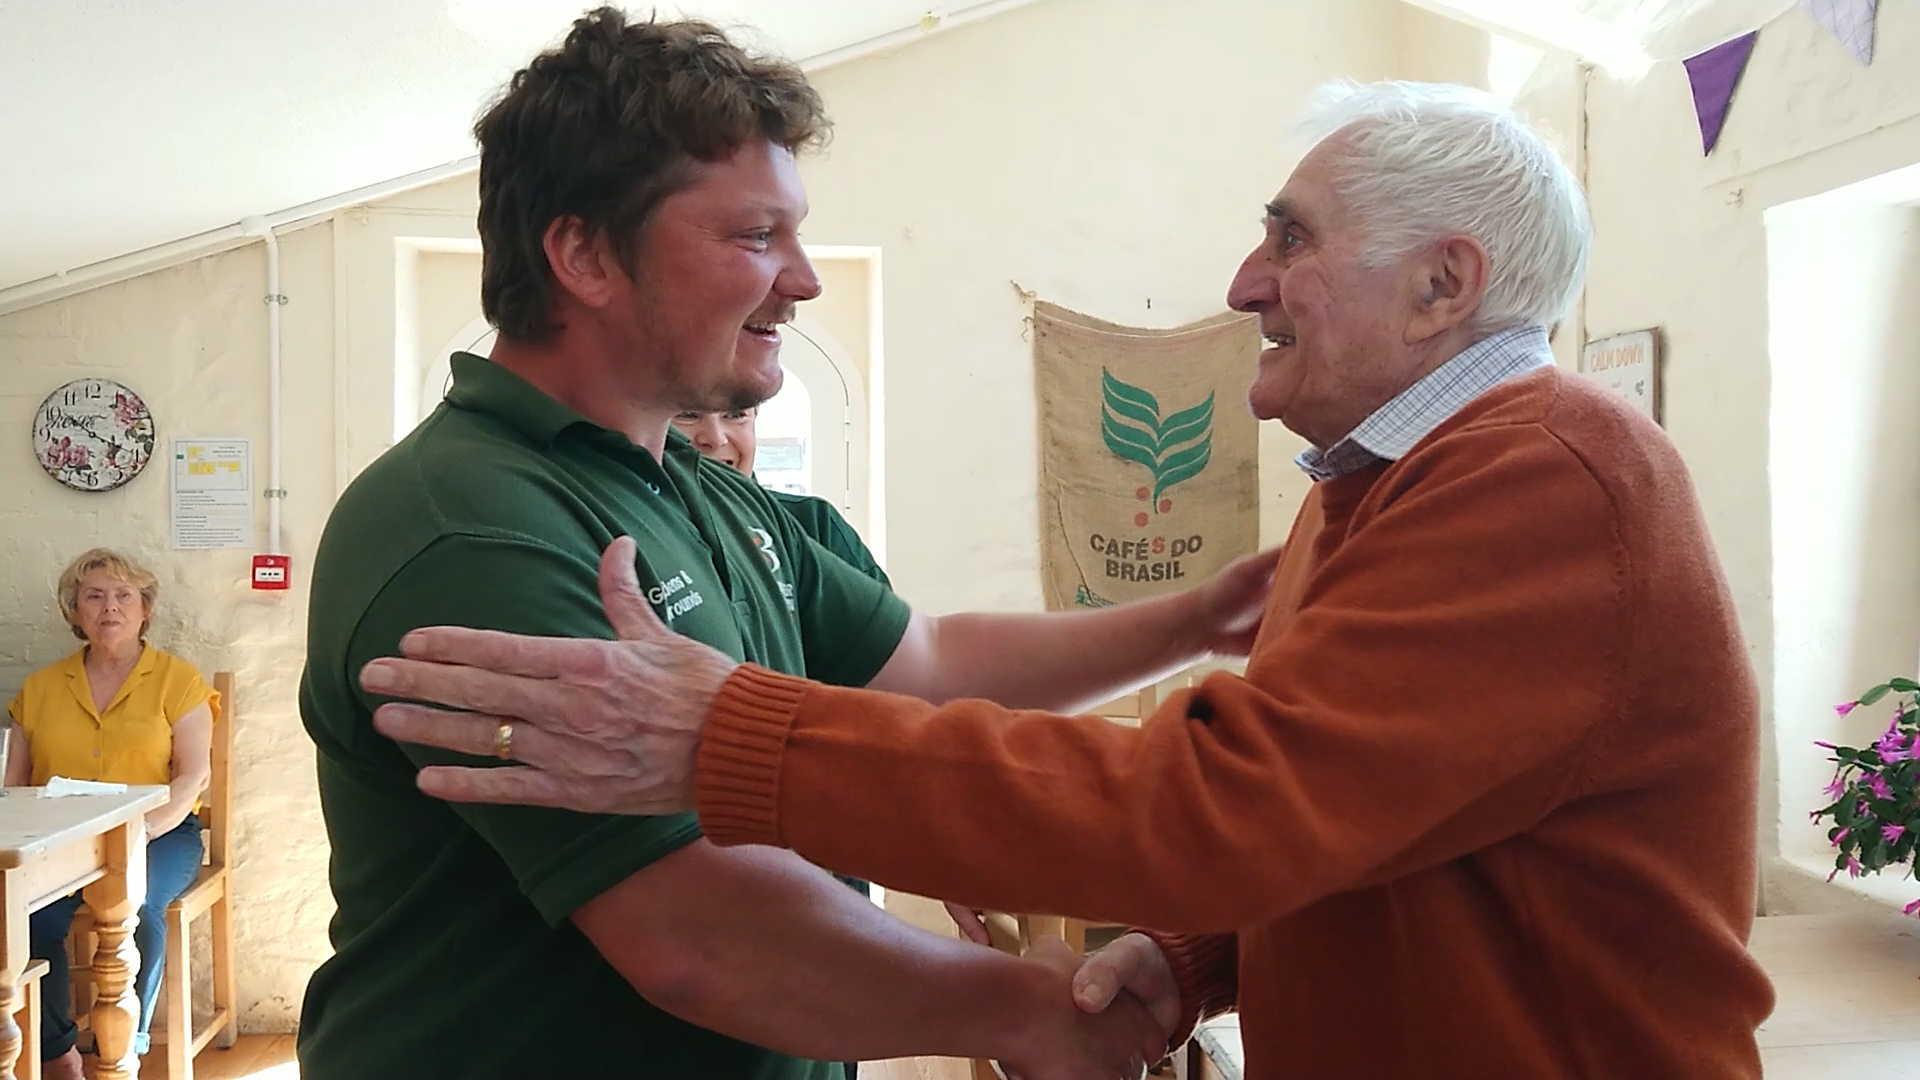 The emotional moment a heart attack victim Brian Cable is reunited with hero Aymeric Huguerre who saved his life